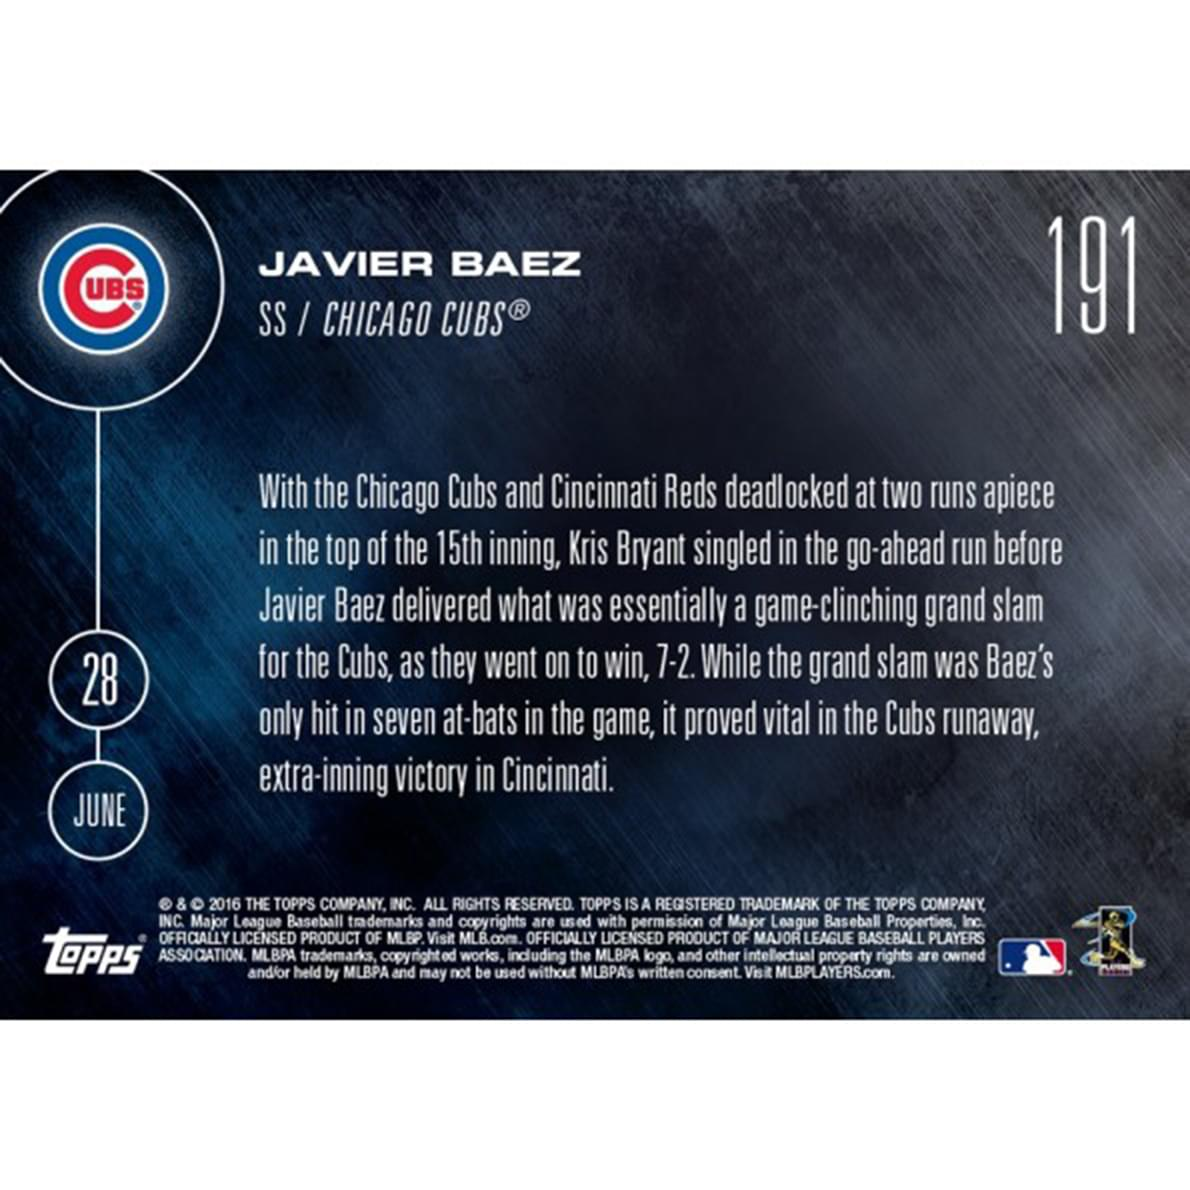 MLB 2016 Topps NOW Card 191 Chicago Cubs Javier Baez Trading Card